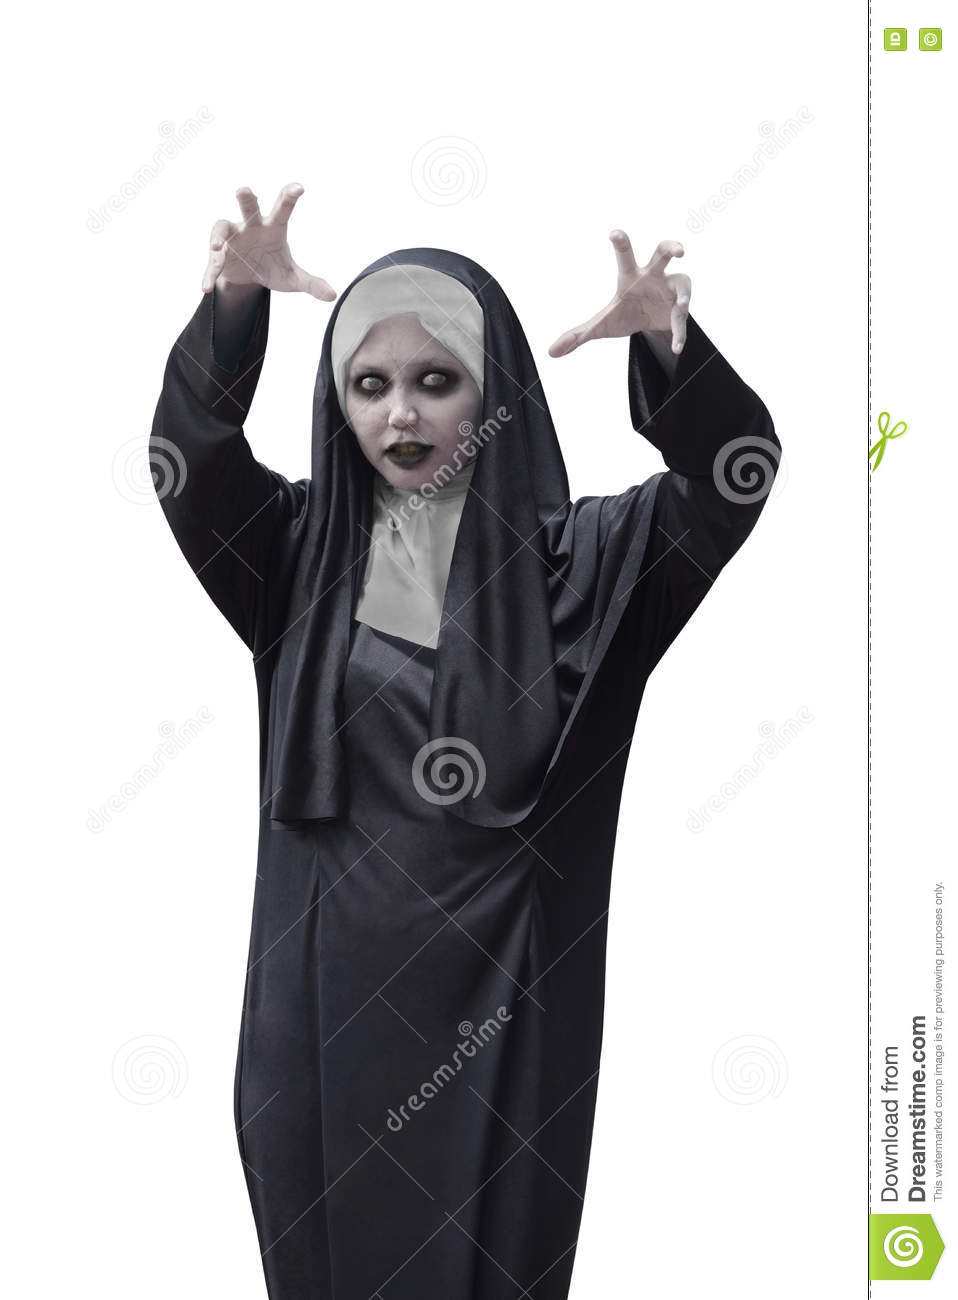 asian woman with evil nun costume stock photo - image of person